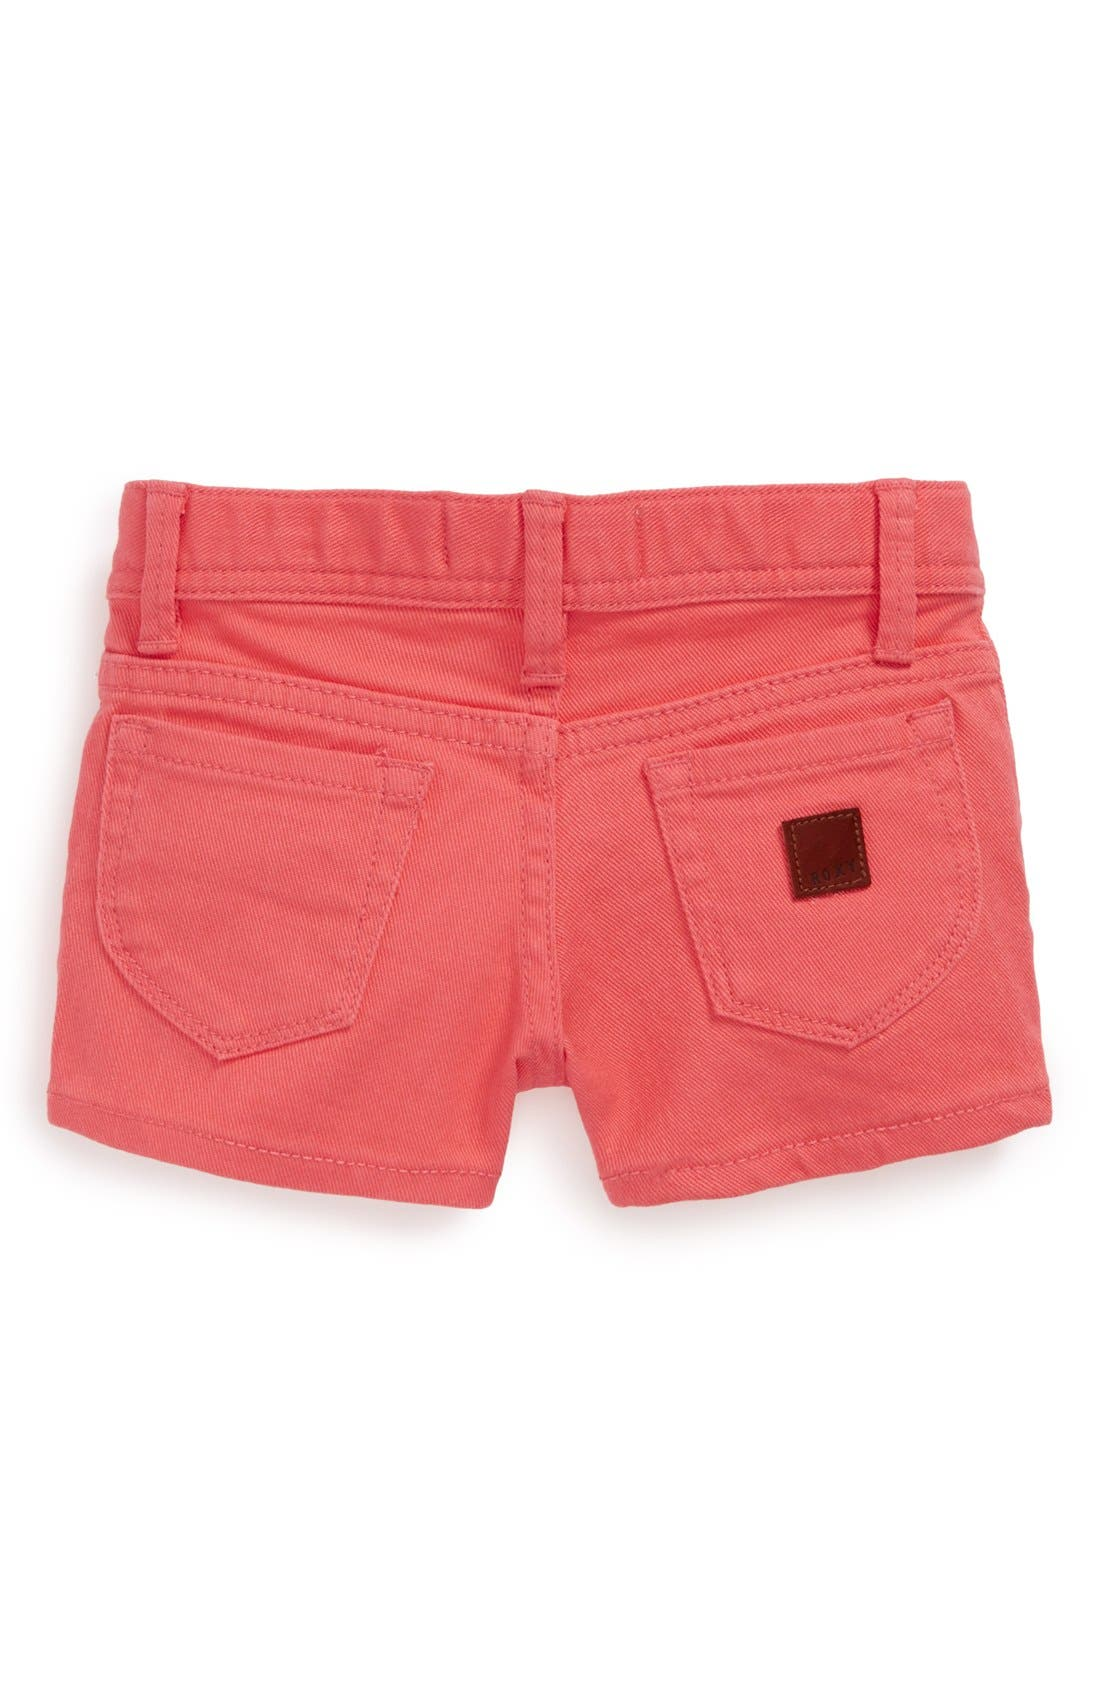 Main Image - Roxy 'Lisy' Shorts (Toddler Girls)